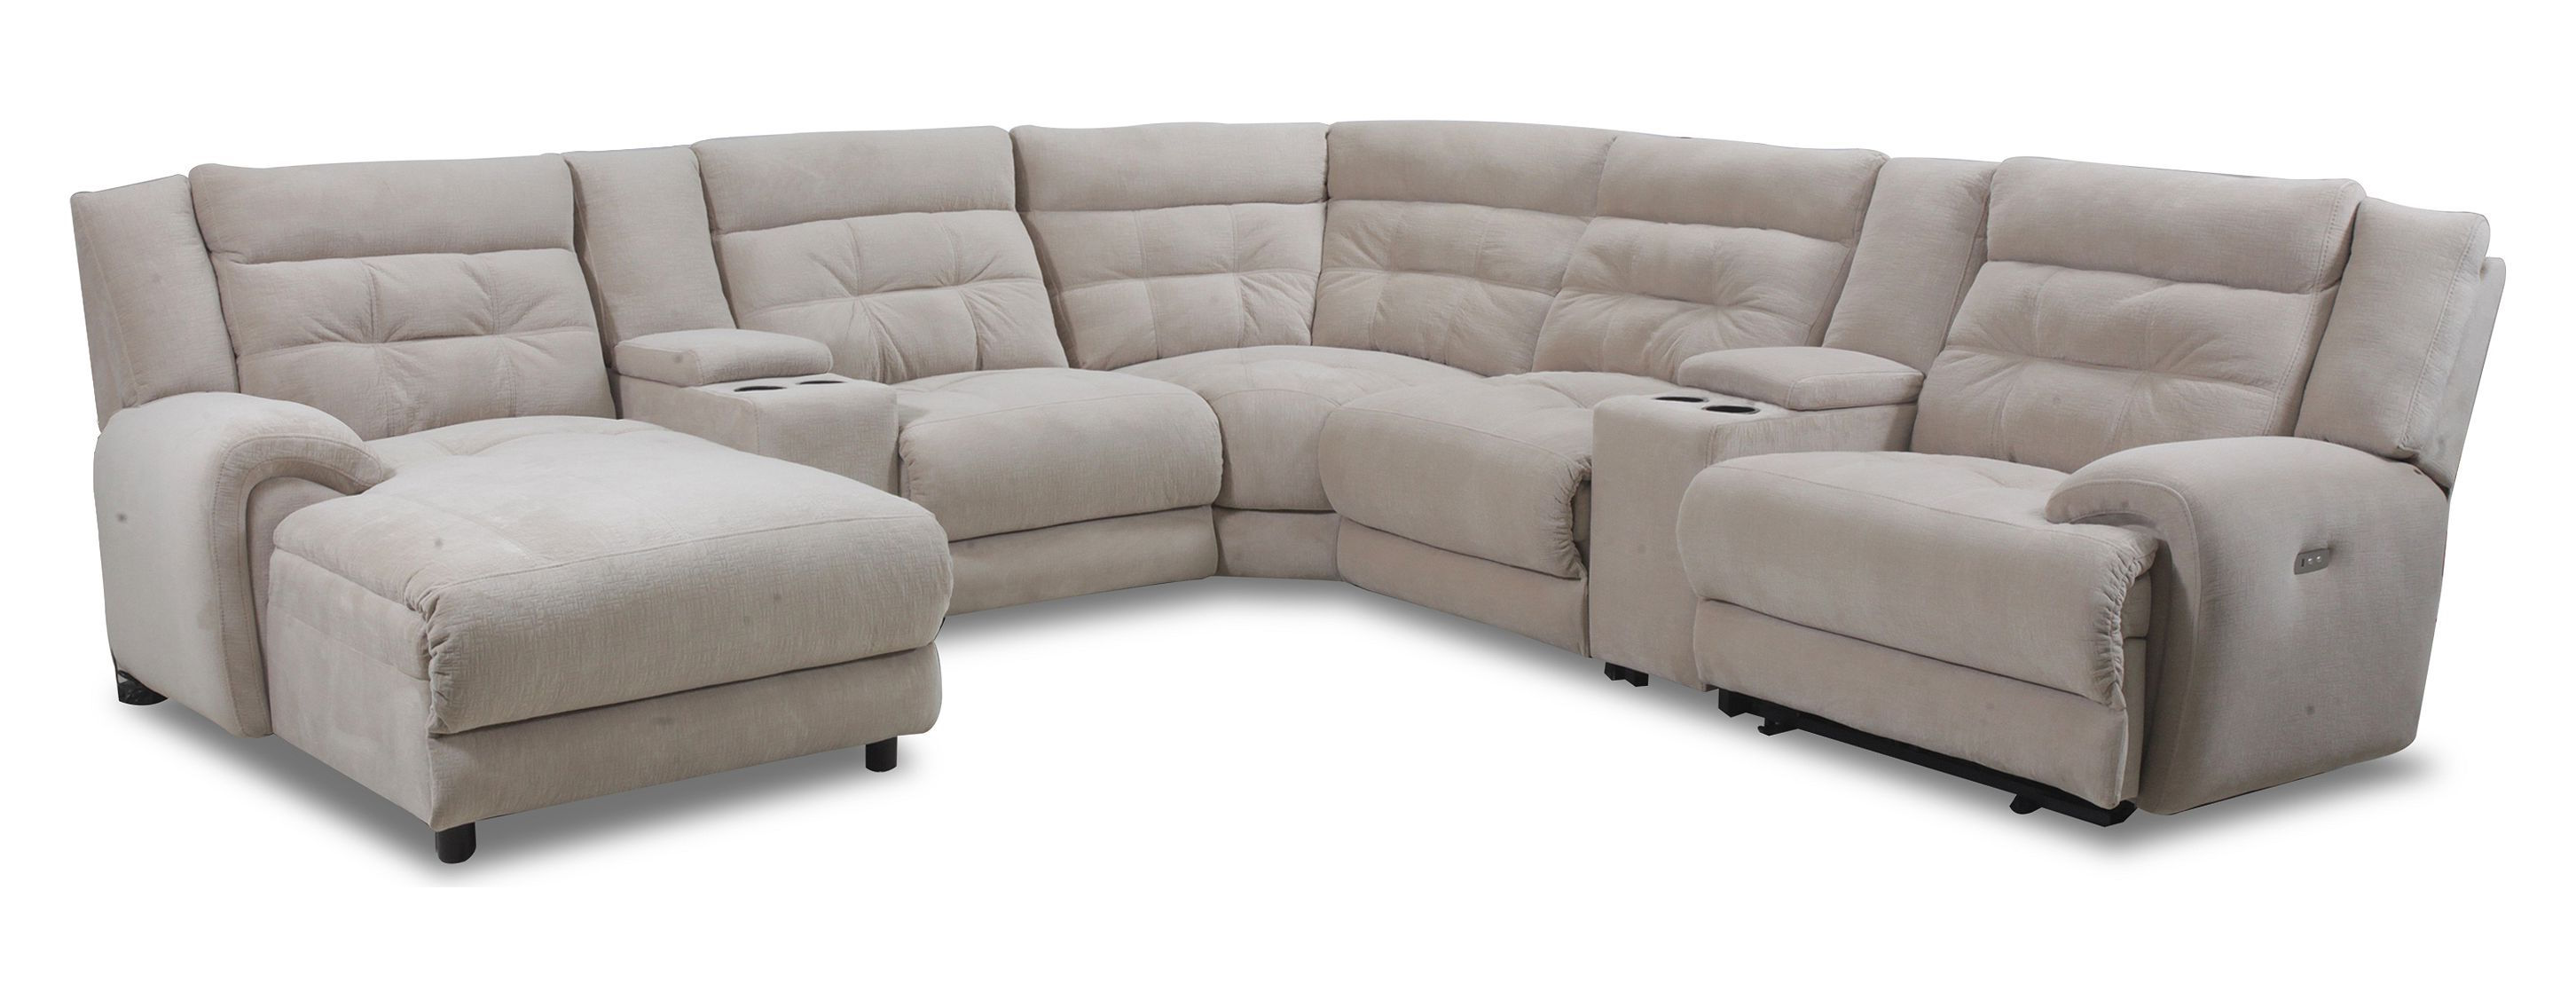 Corsica Reclining Sectional 235